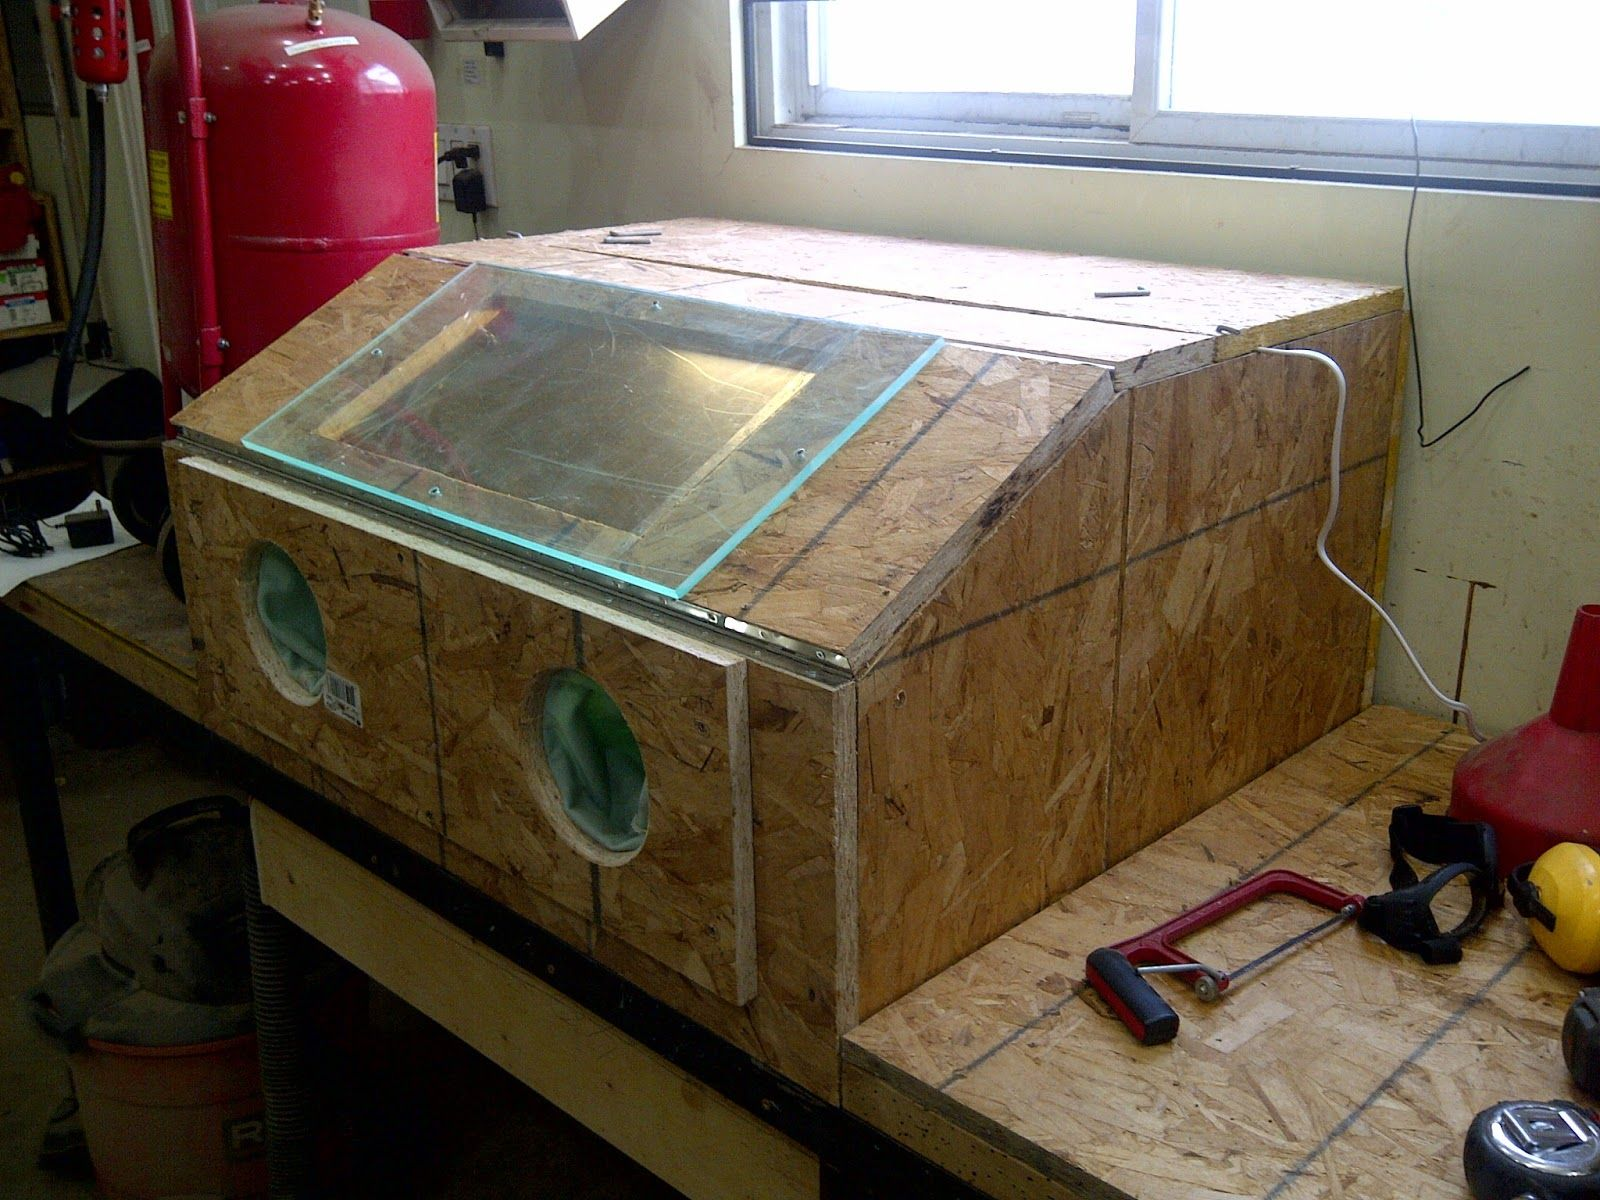 Project To Build A Sandblasting Cabinet That Can Be